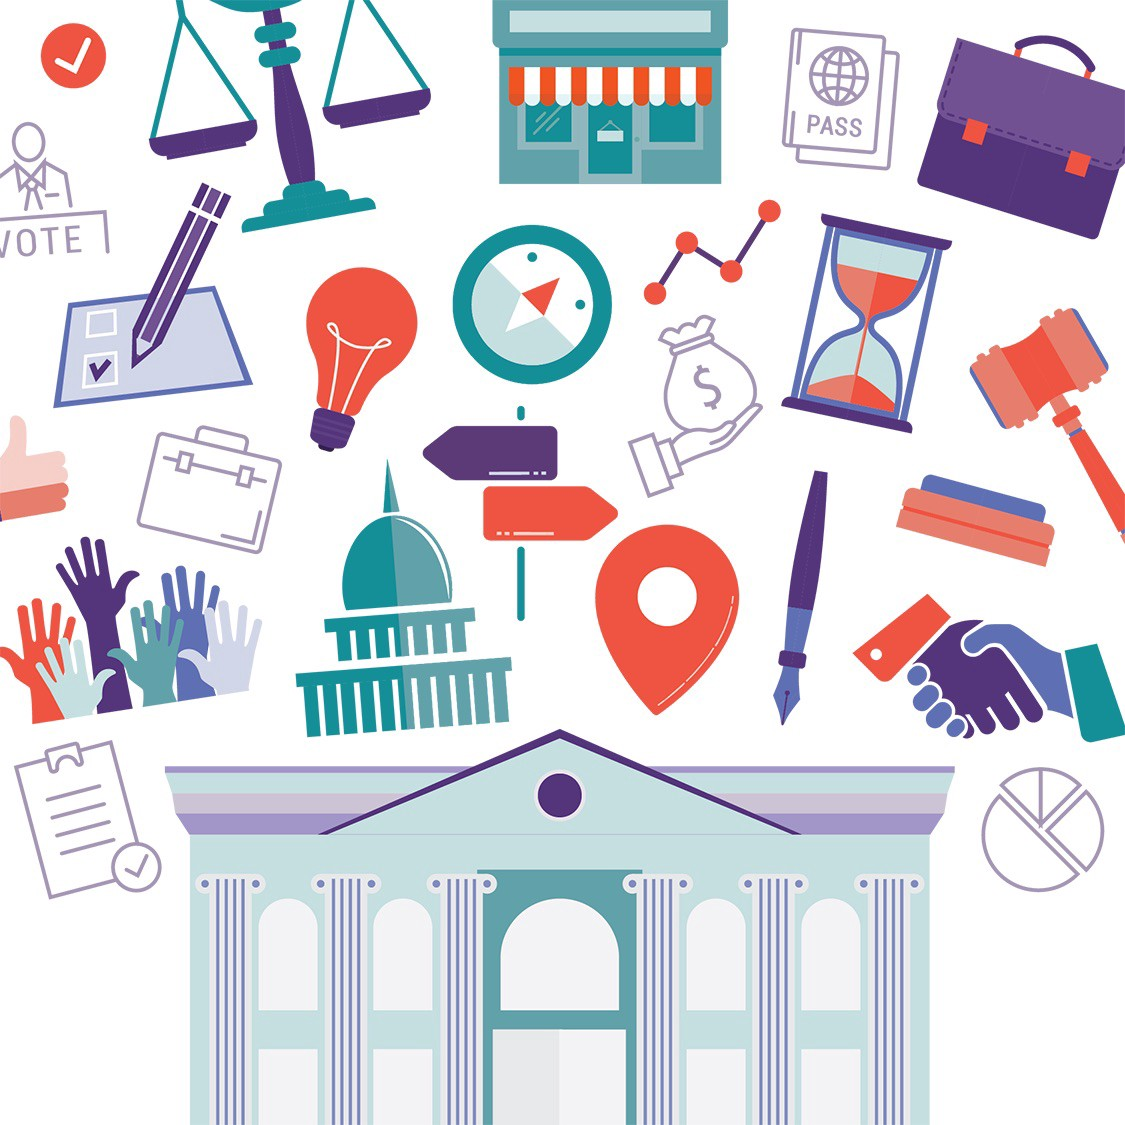 illustrastion of government buildings